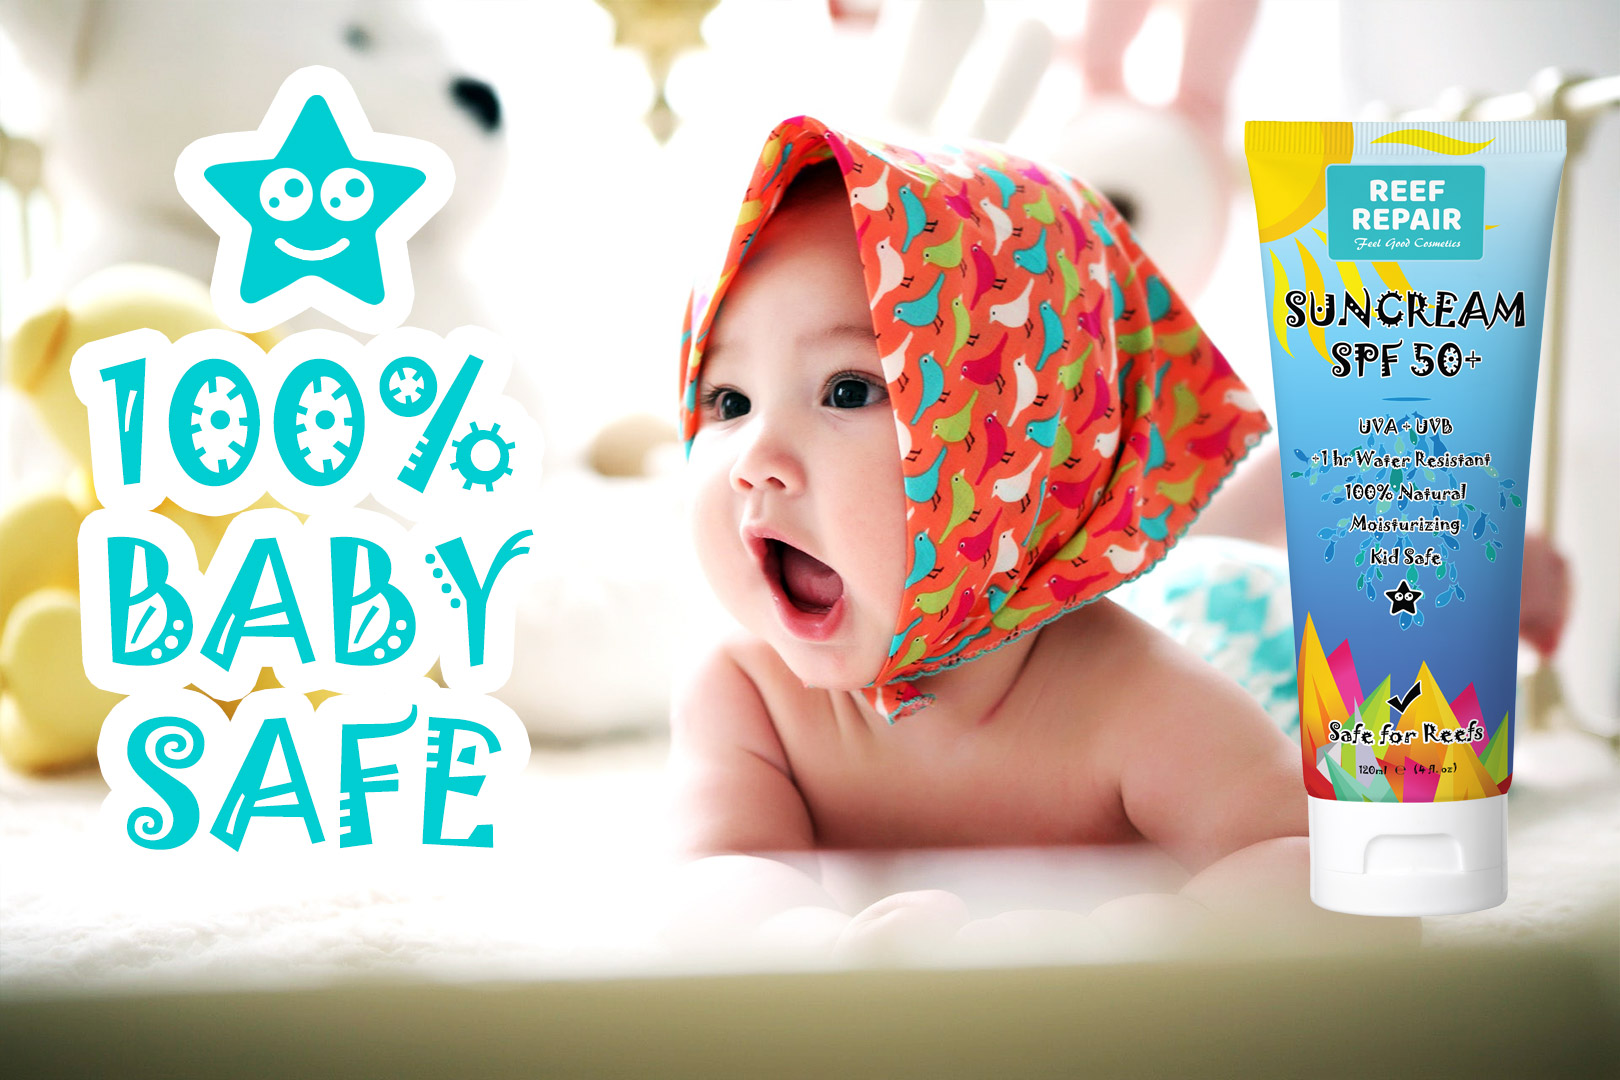 Baby Safe Reef Safe Skin Safe All Natural Spf 50 Sunscreen For Kids By Reef Repair 120ml